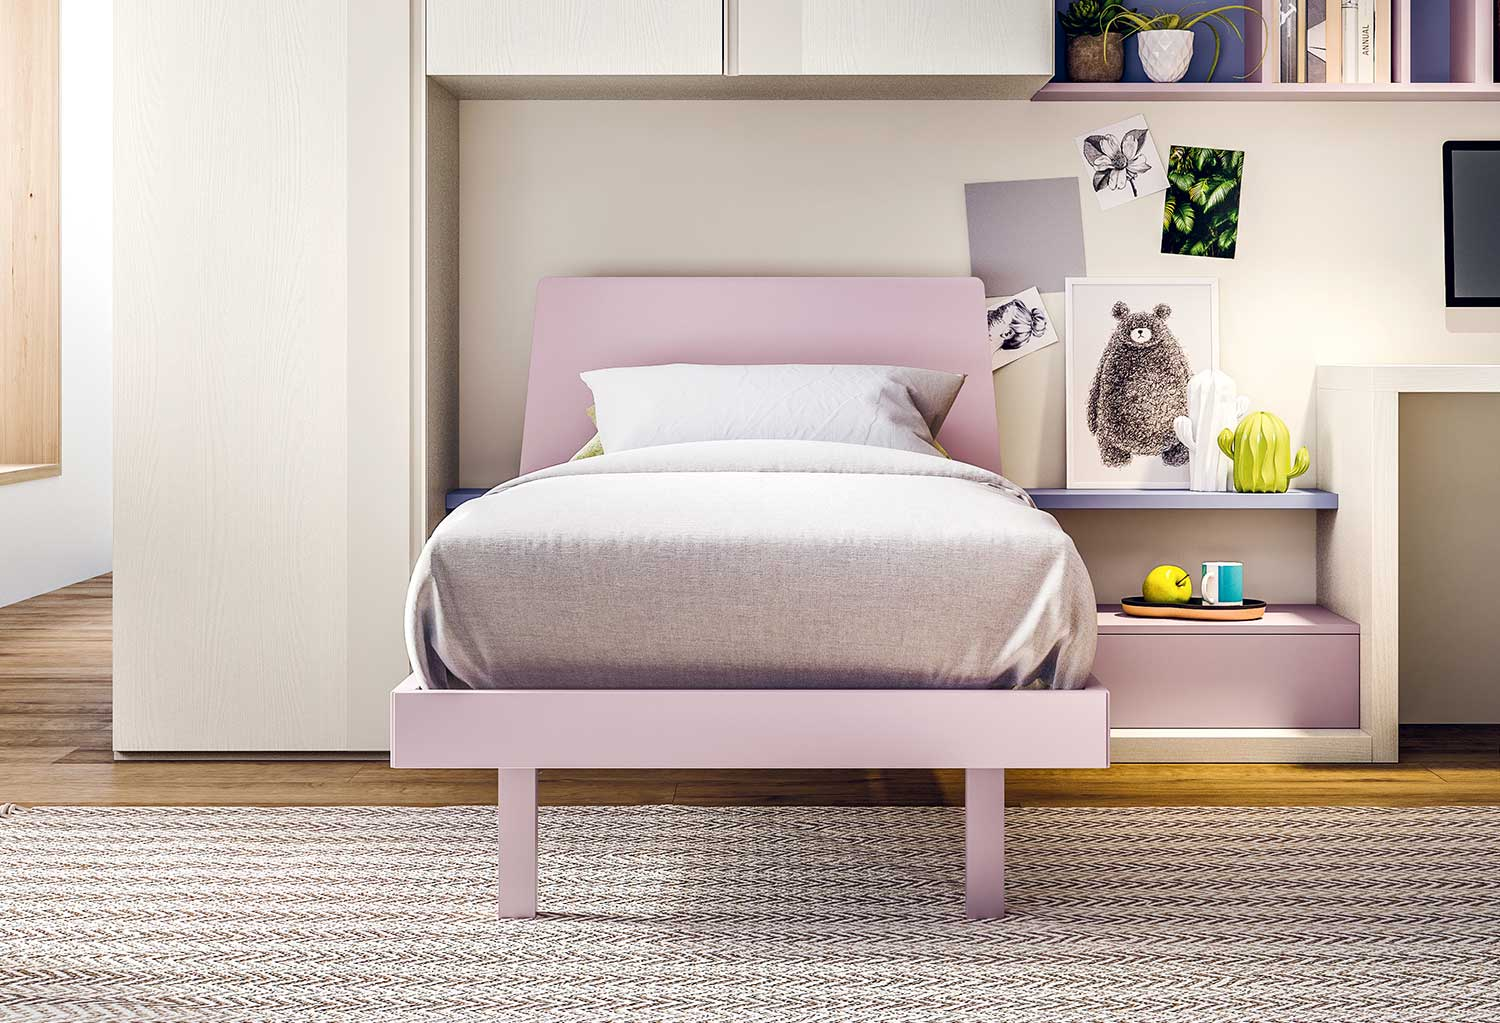 The single bed frame is available in many sizes and models